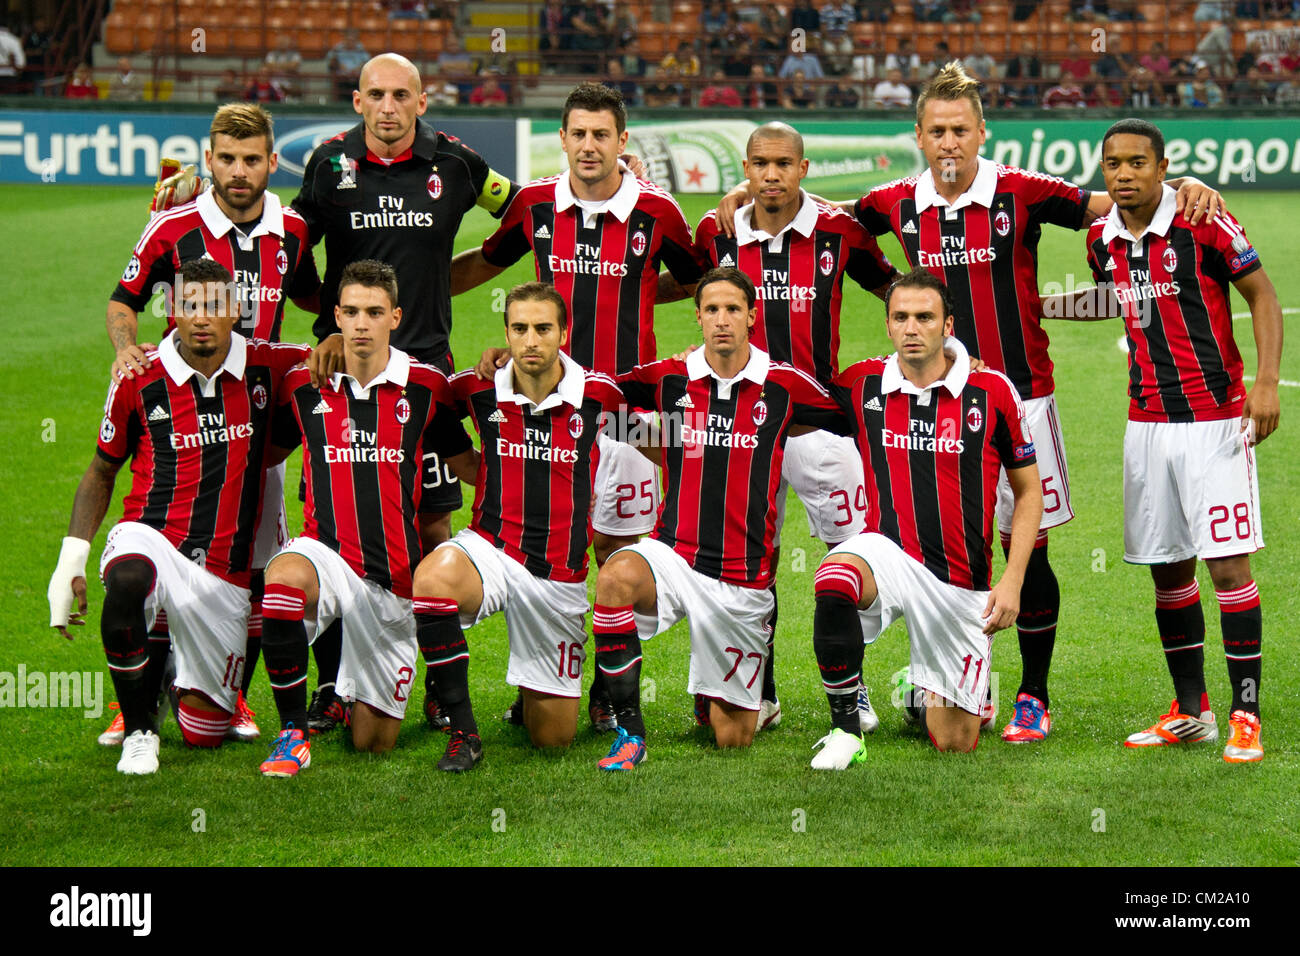 Ac milan football club players pictures to pin on for Ac milan club